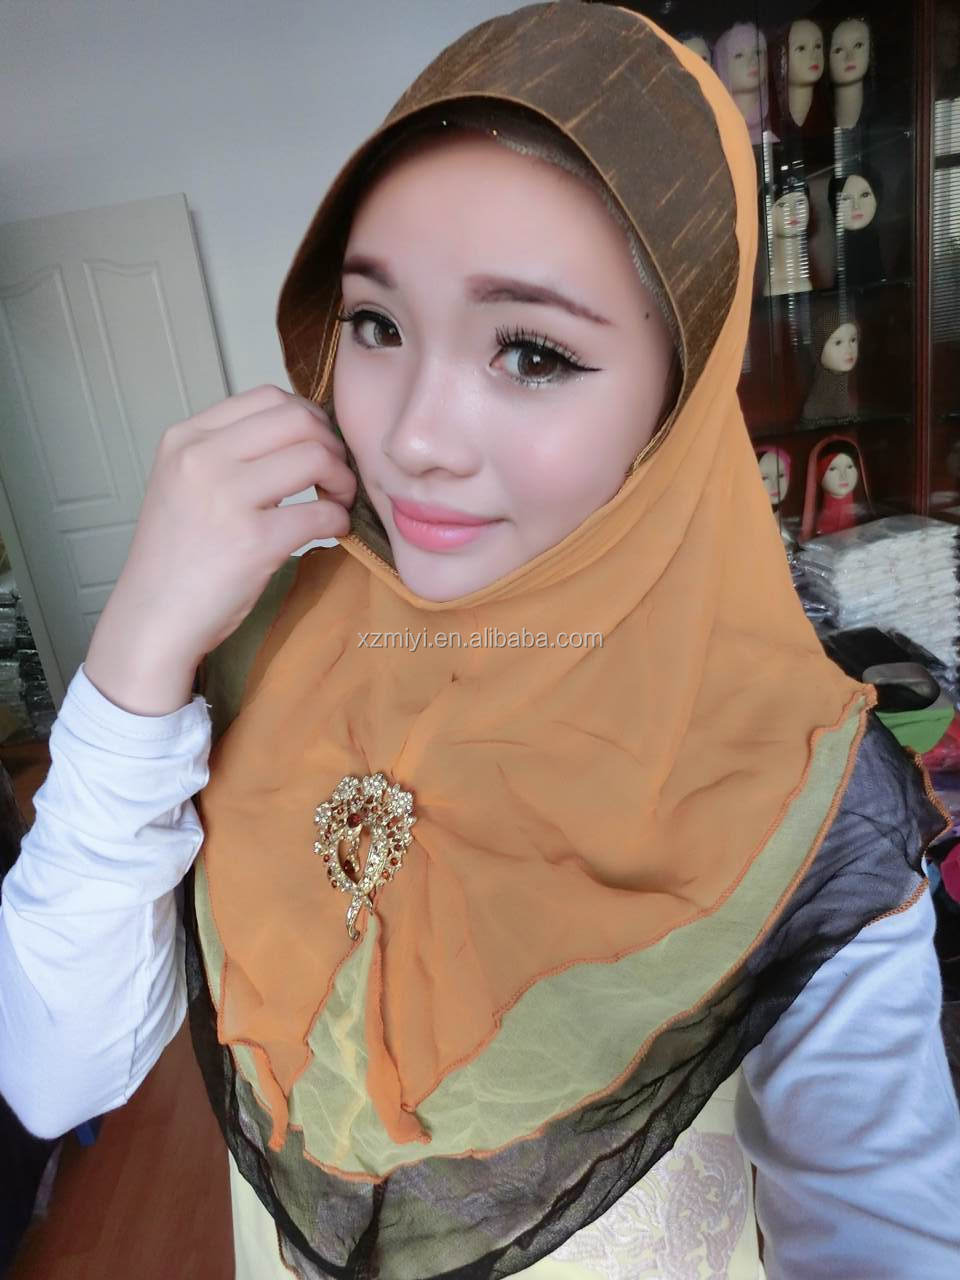 chest springs single muslim girls The #1 south asia matrimonial, south asian marriage & south asian dating site for south asian singles south asian girls seeking to the prospective muslim.